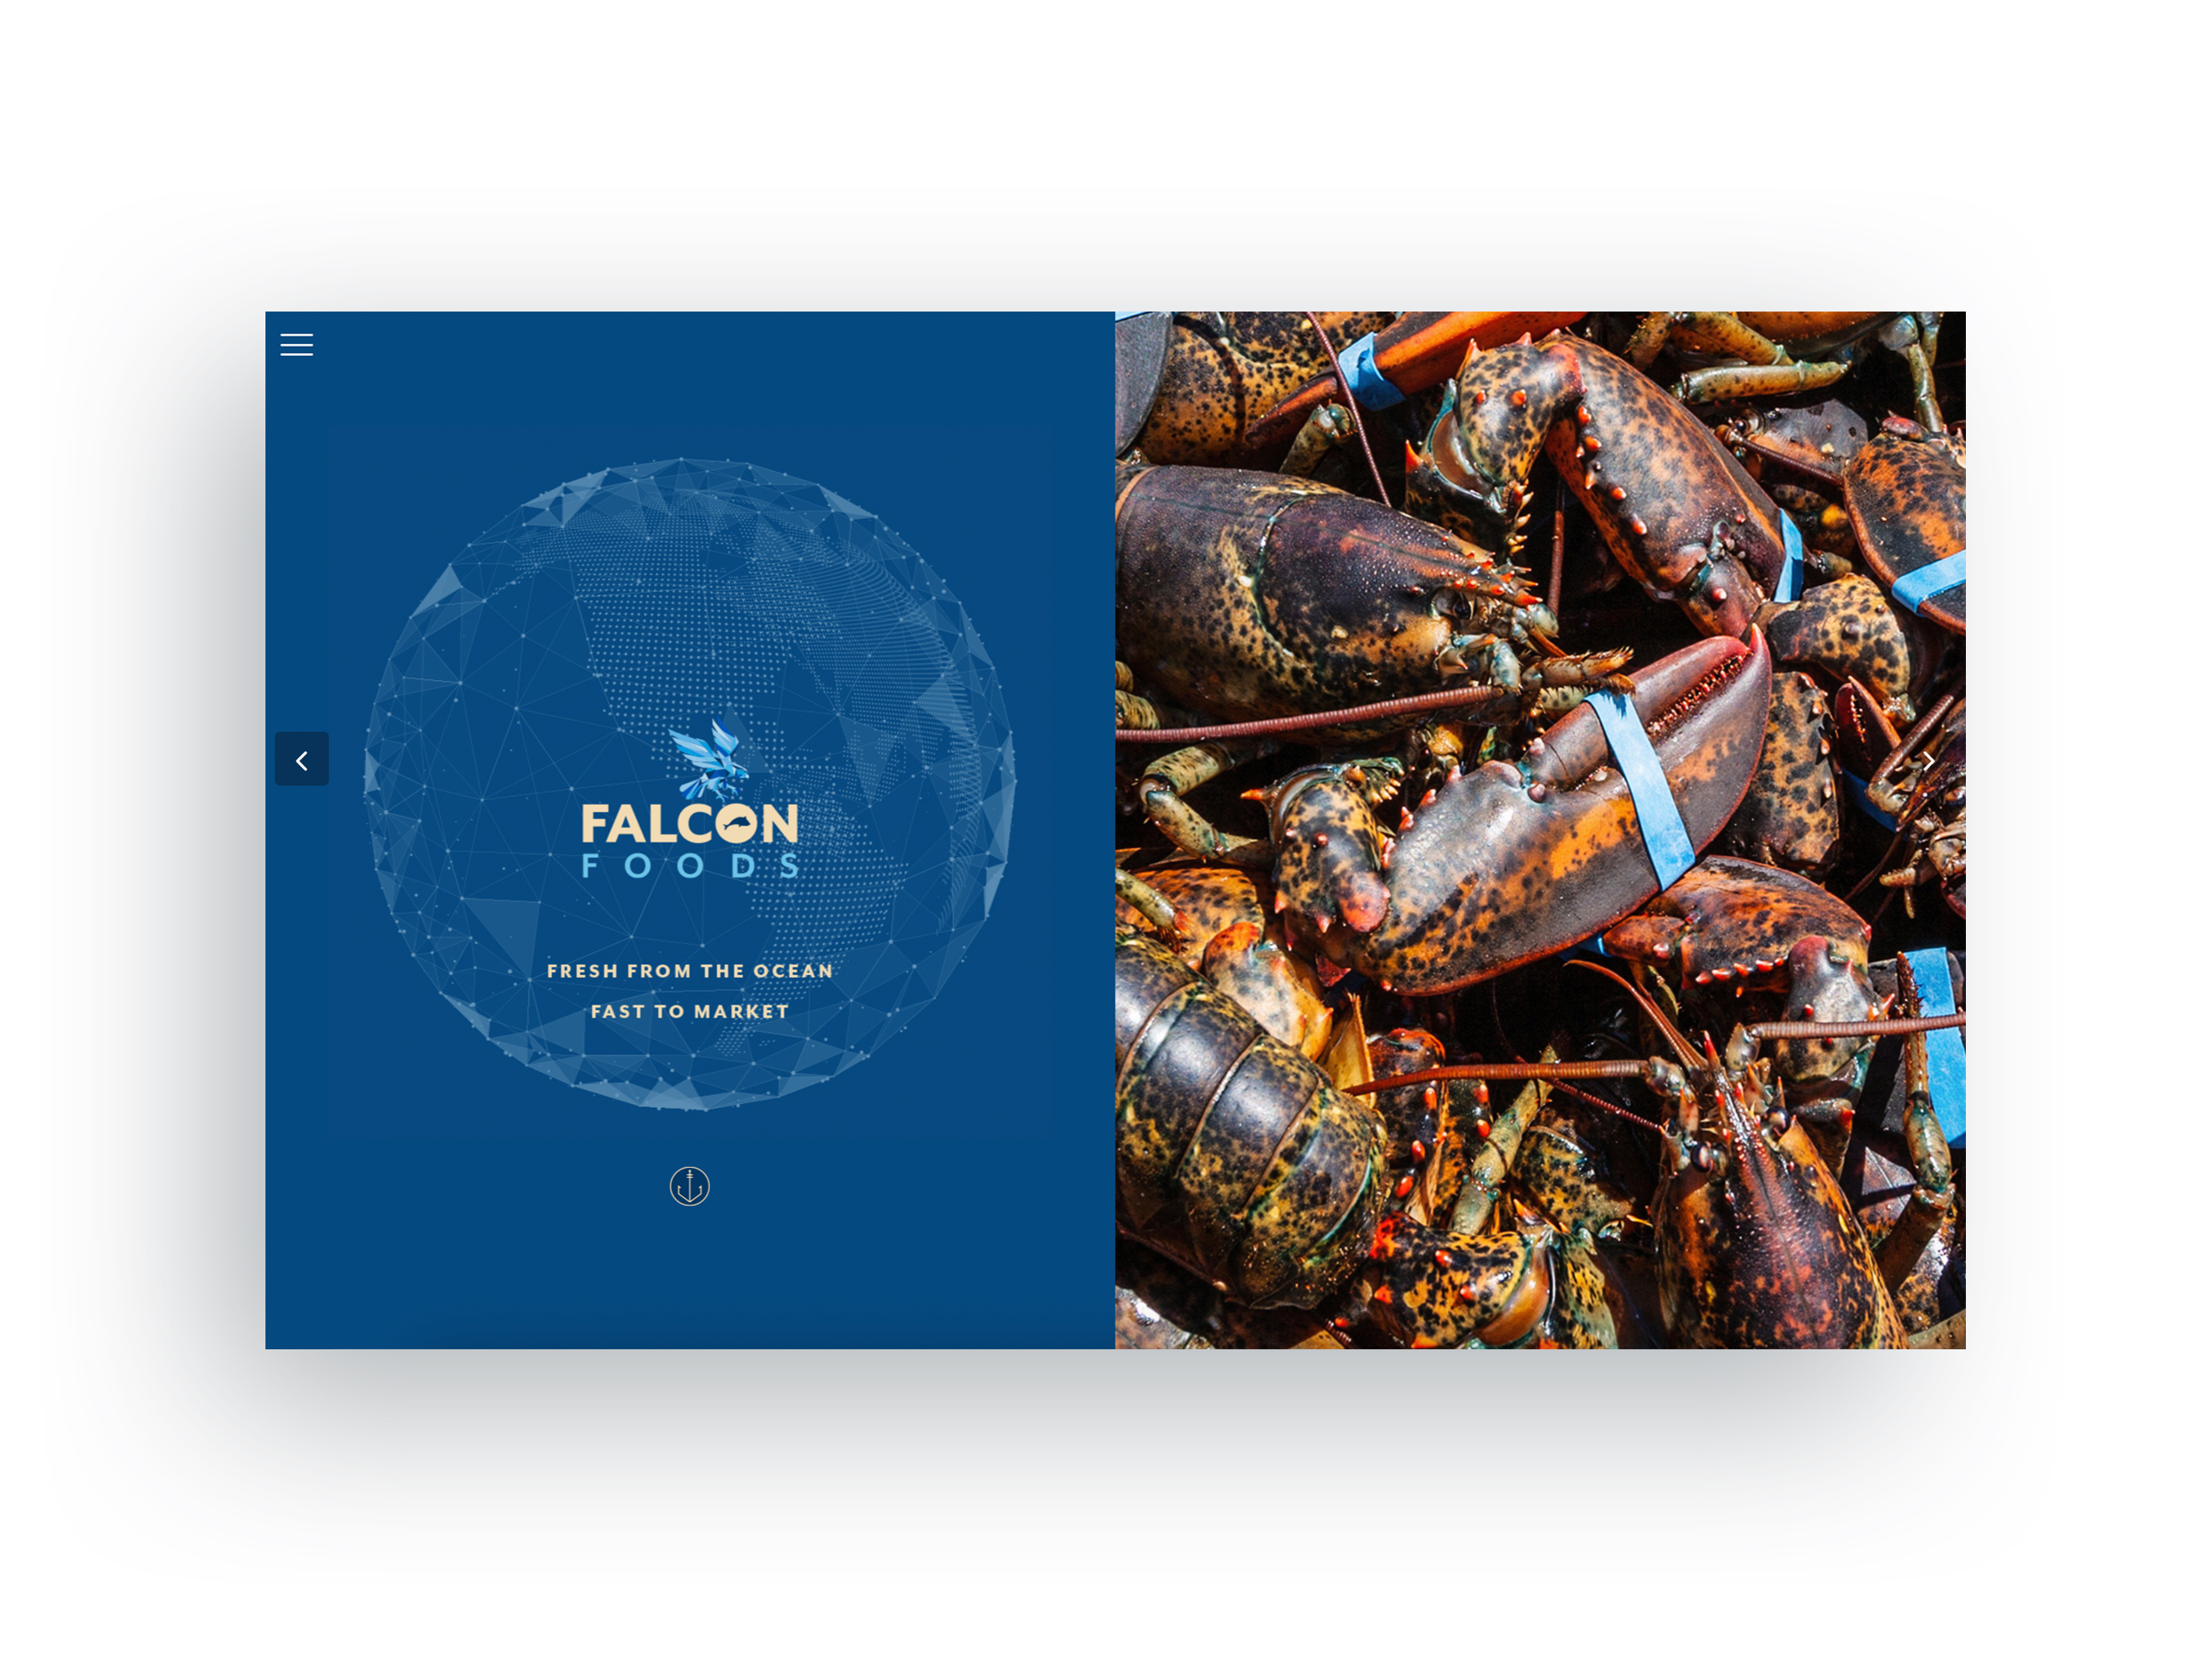 Falcon Foods - Home Page